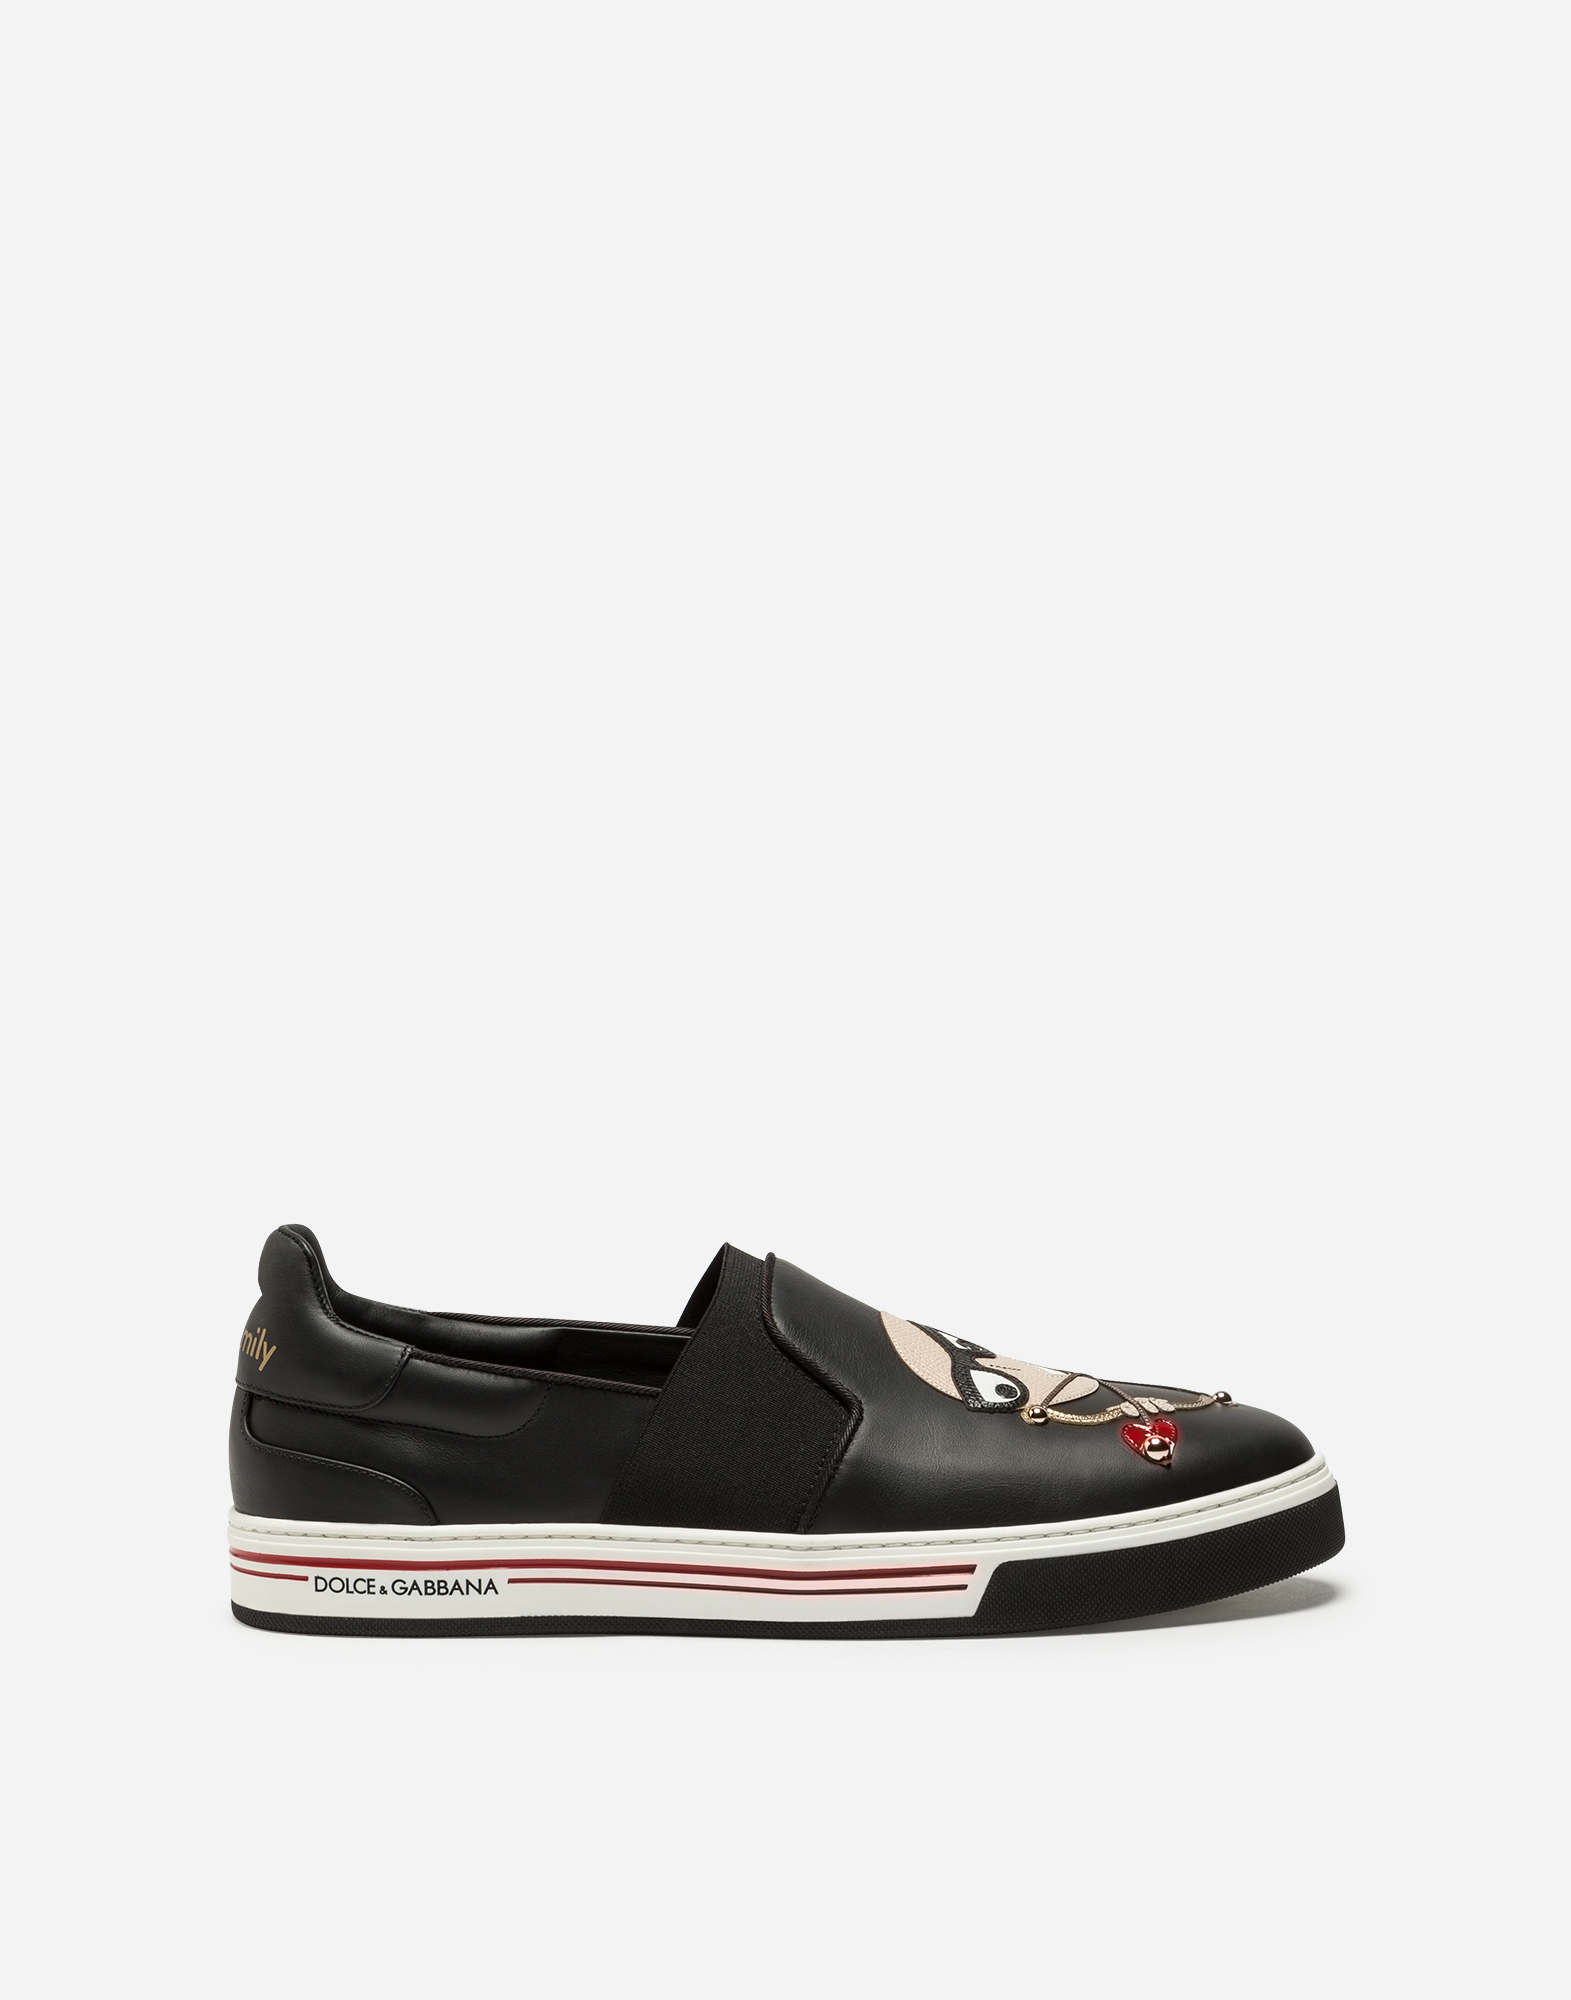 CALFSKIN NAPPA ROMA SLIP-ON SNEAKERS WITH DIVER-STYLE PATCHES OF THE DESIGNERS